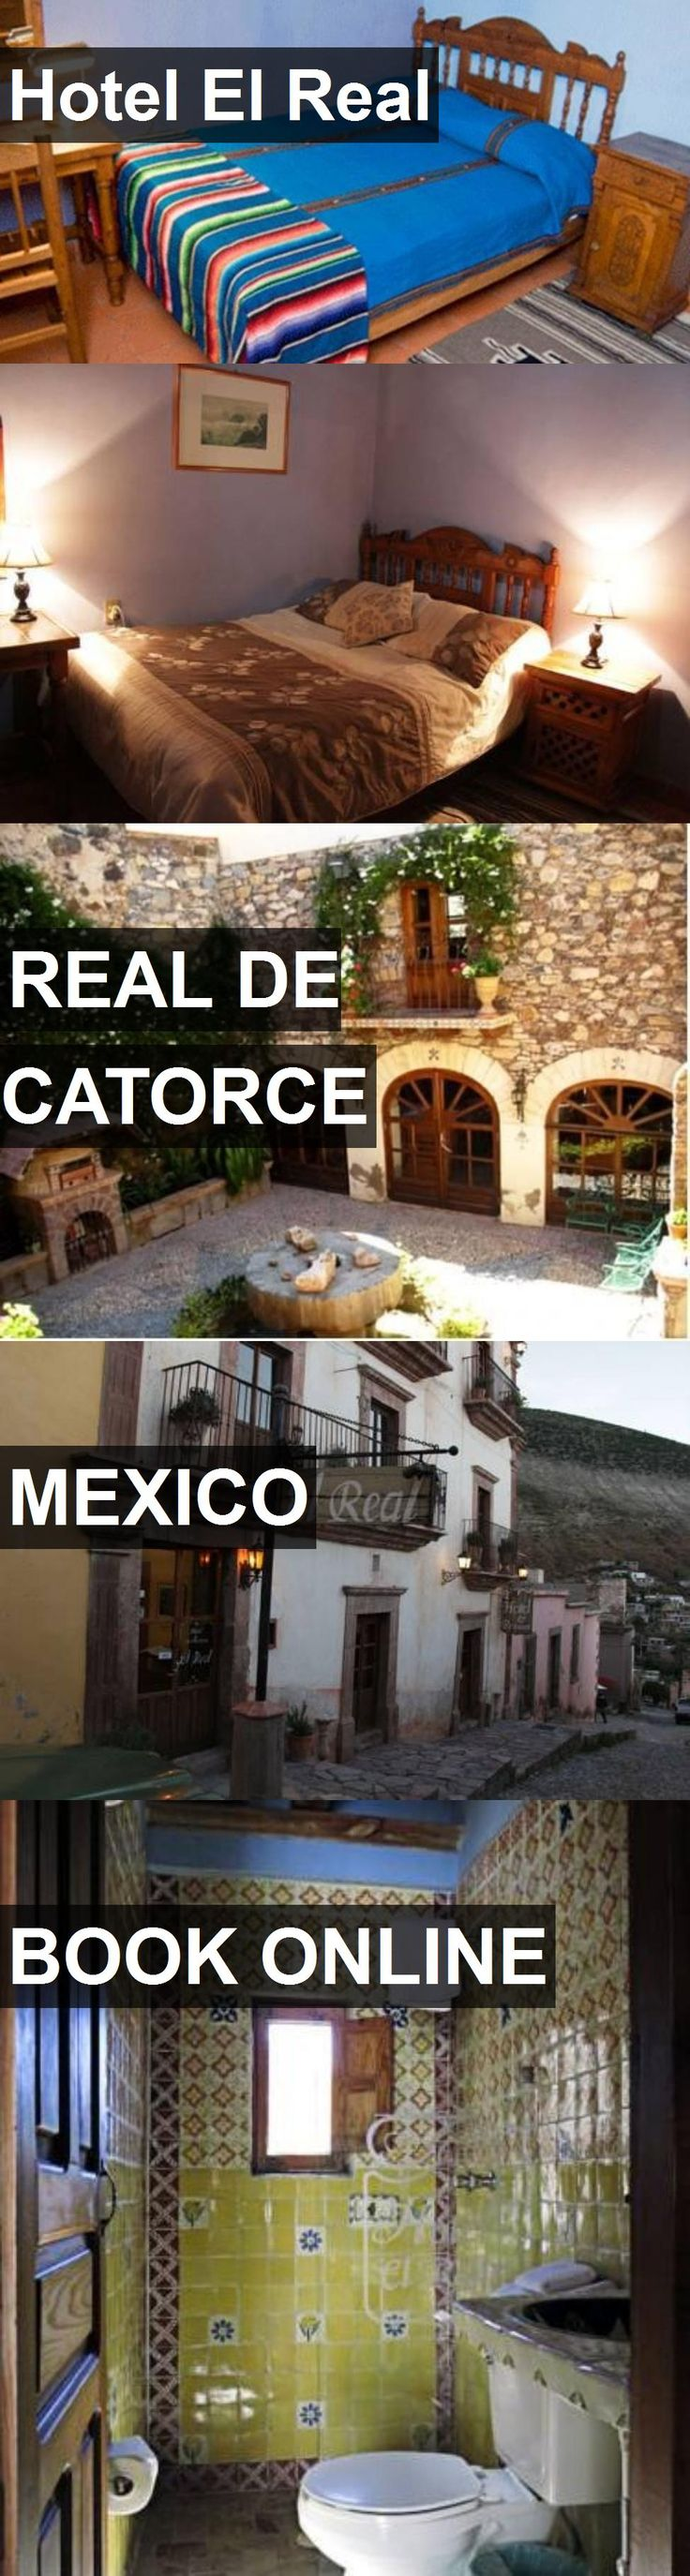 Hotel El Real in Real de Catorce, Mexico. For more information, photos, reviews and best prices please follow the link. #Mexico #RealdeCatorce #travel #vacation #hotel